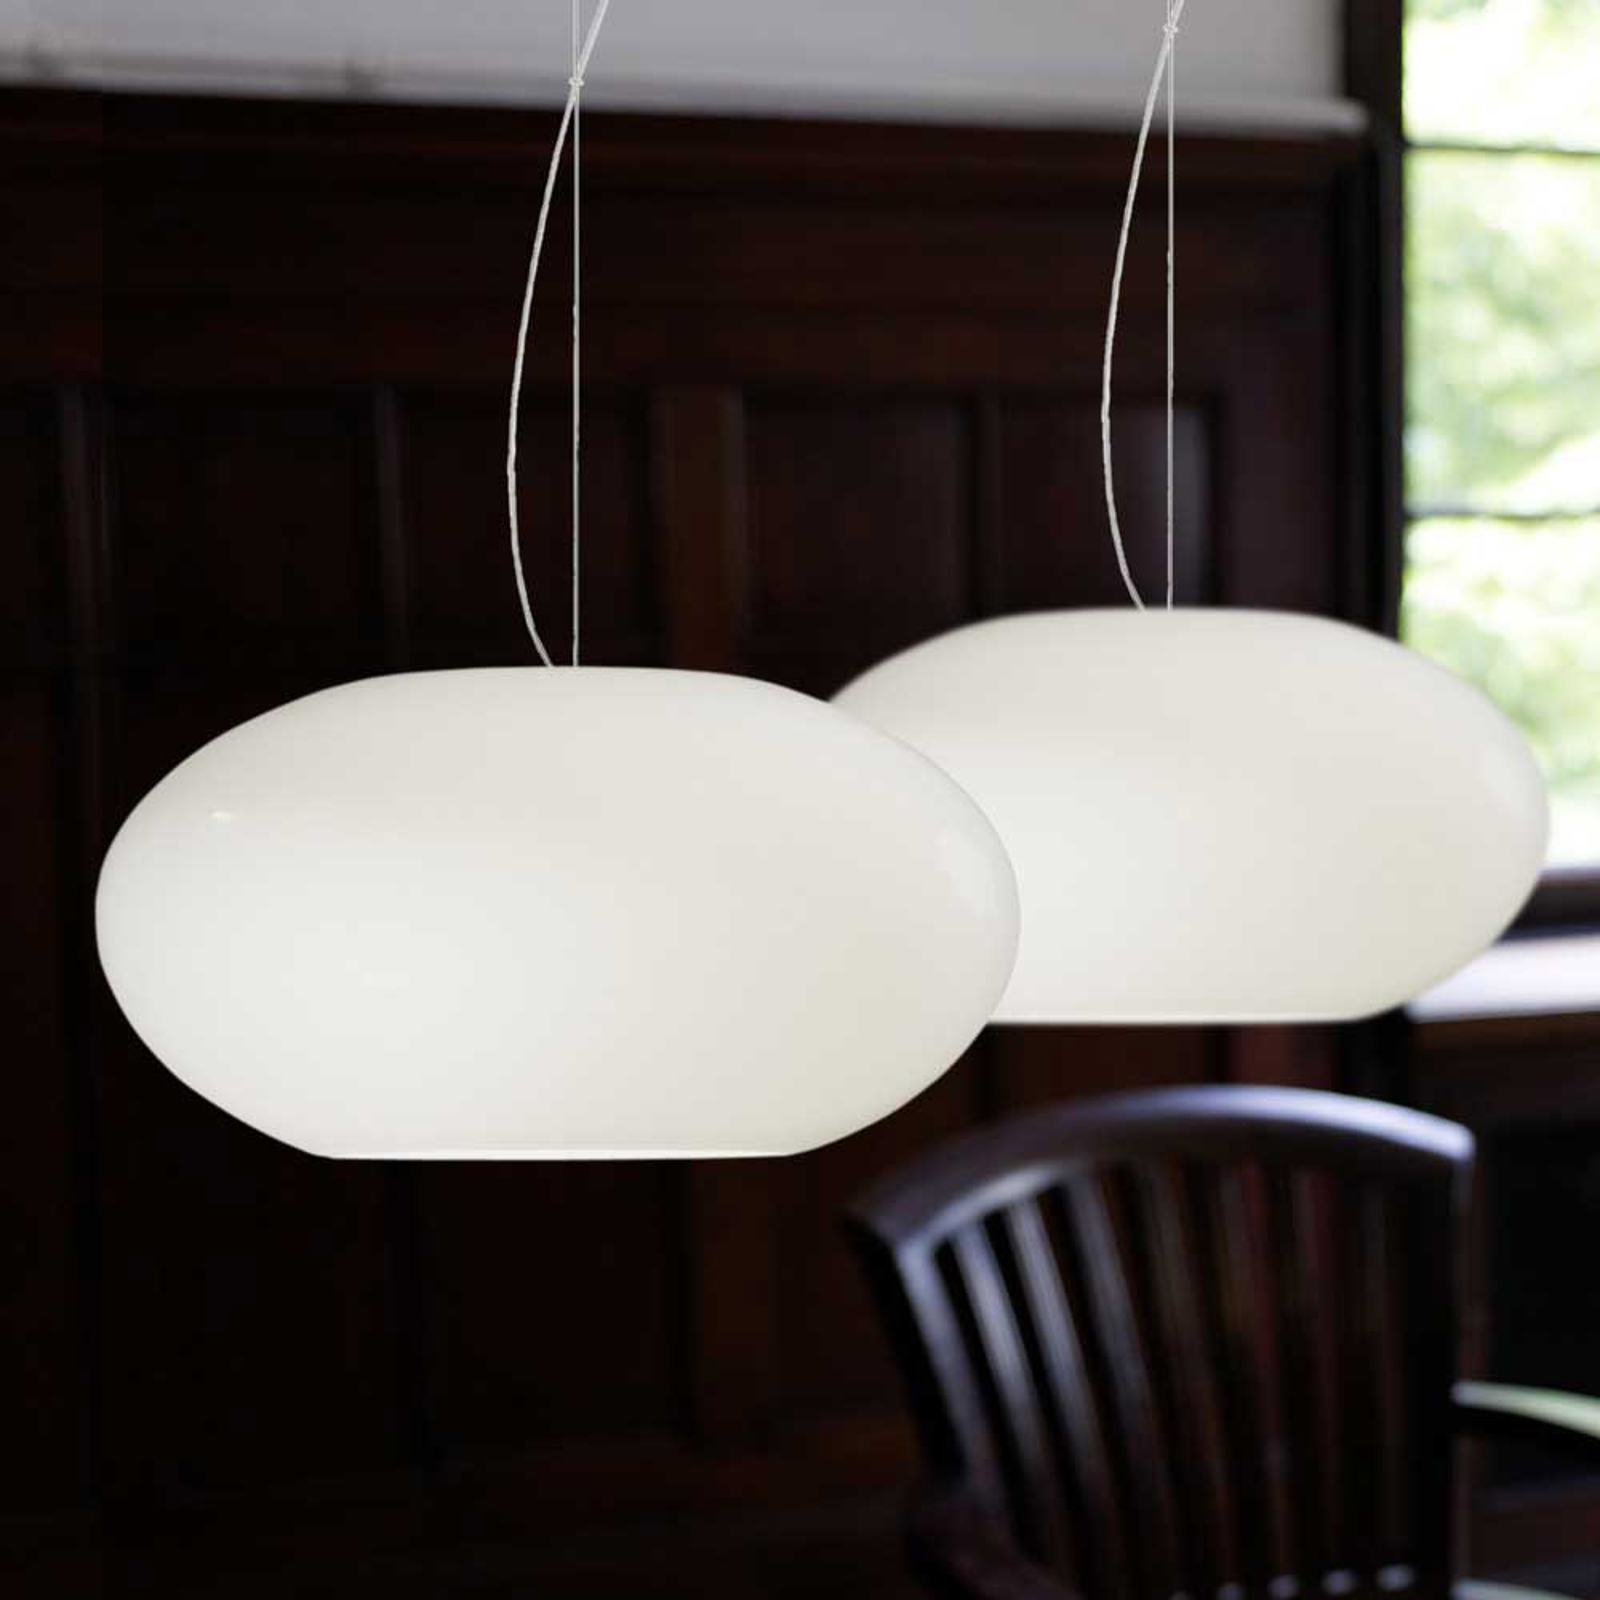 Design-hanglamp AIH, 28 cm, wit glanzend